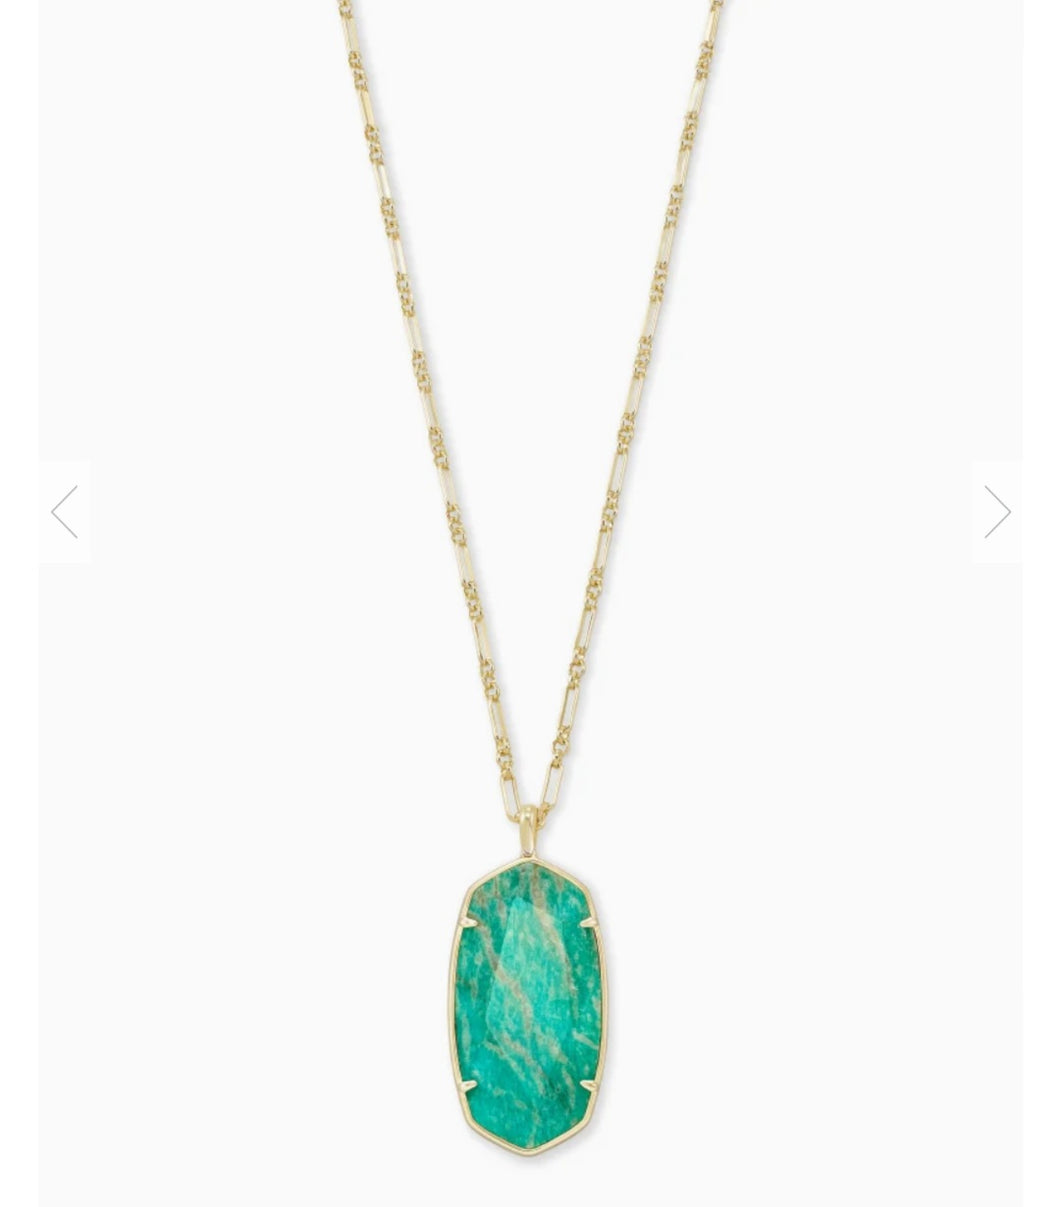 Kendra Scott Faceted Reid Gold Long Pendant Necklace in Dark Teal Amazonite